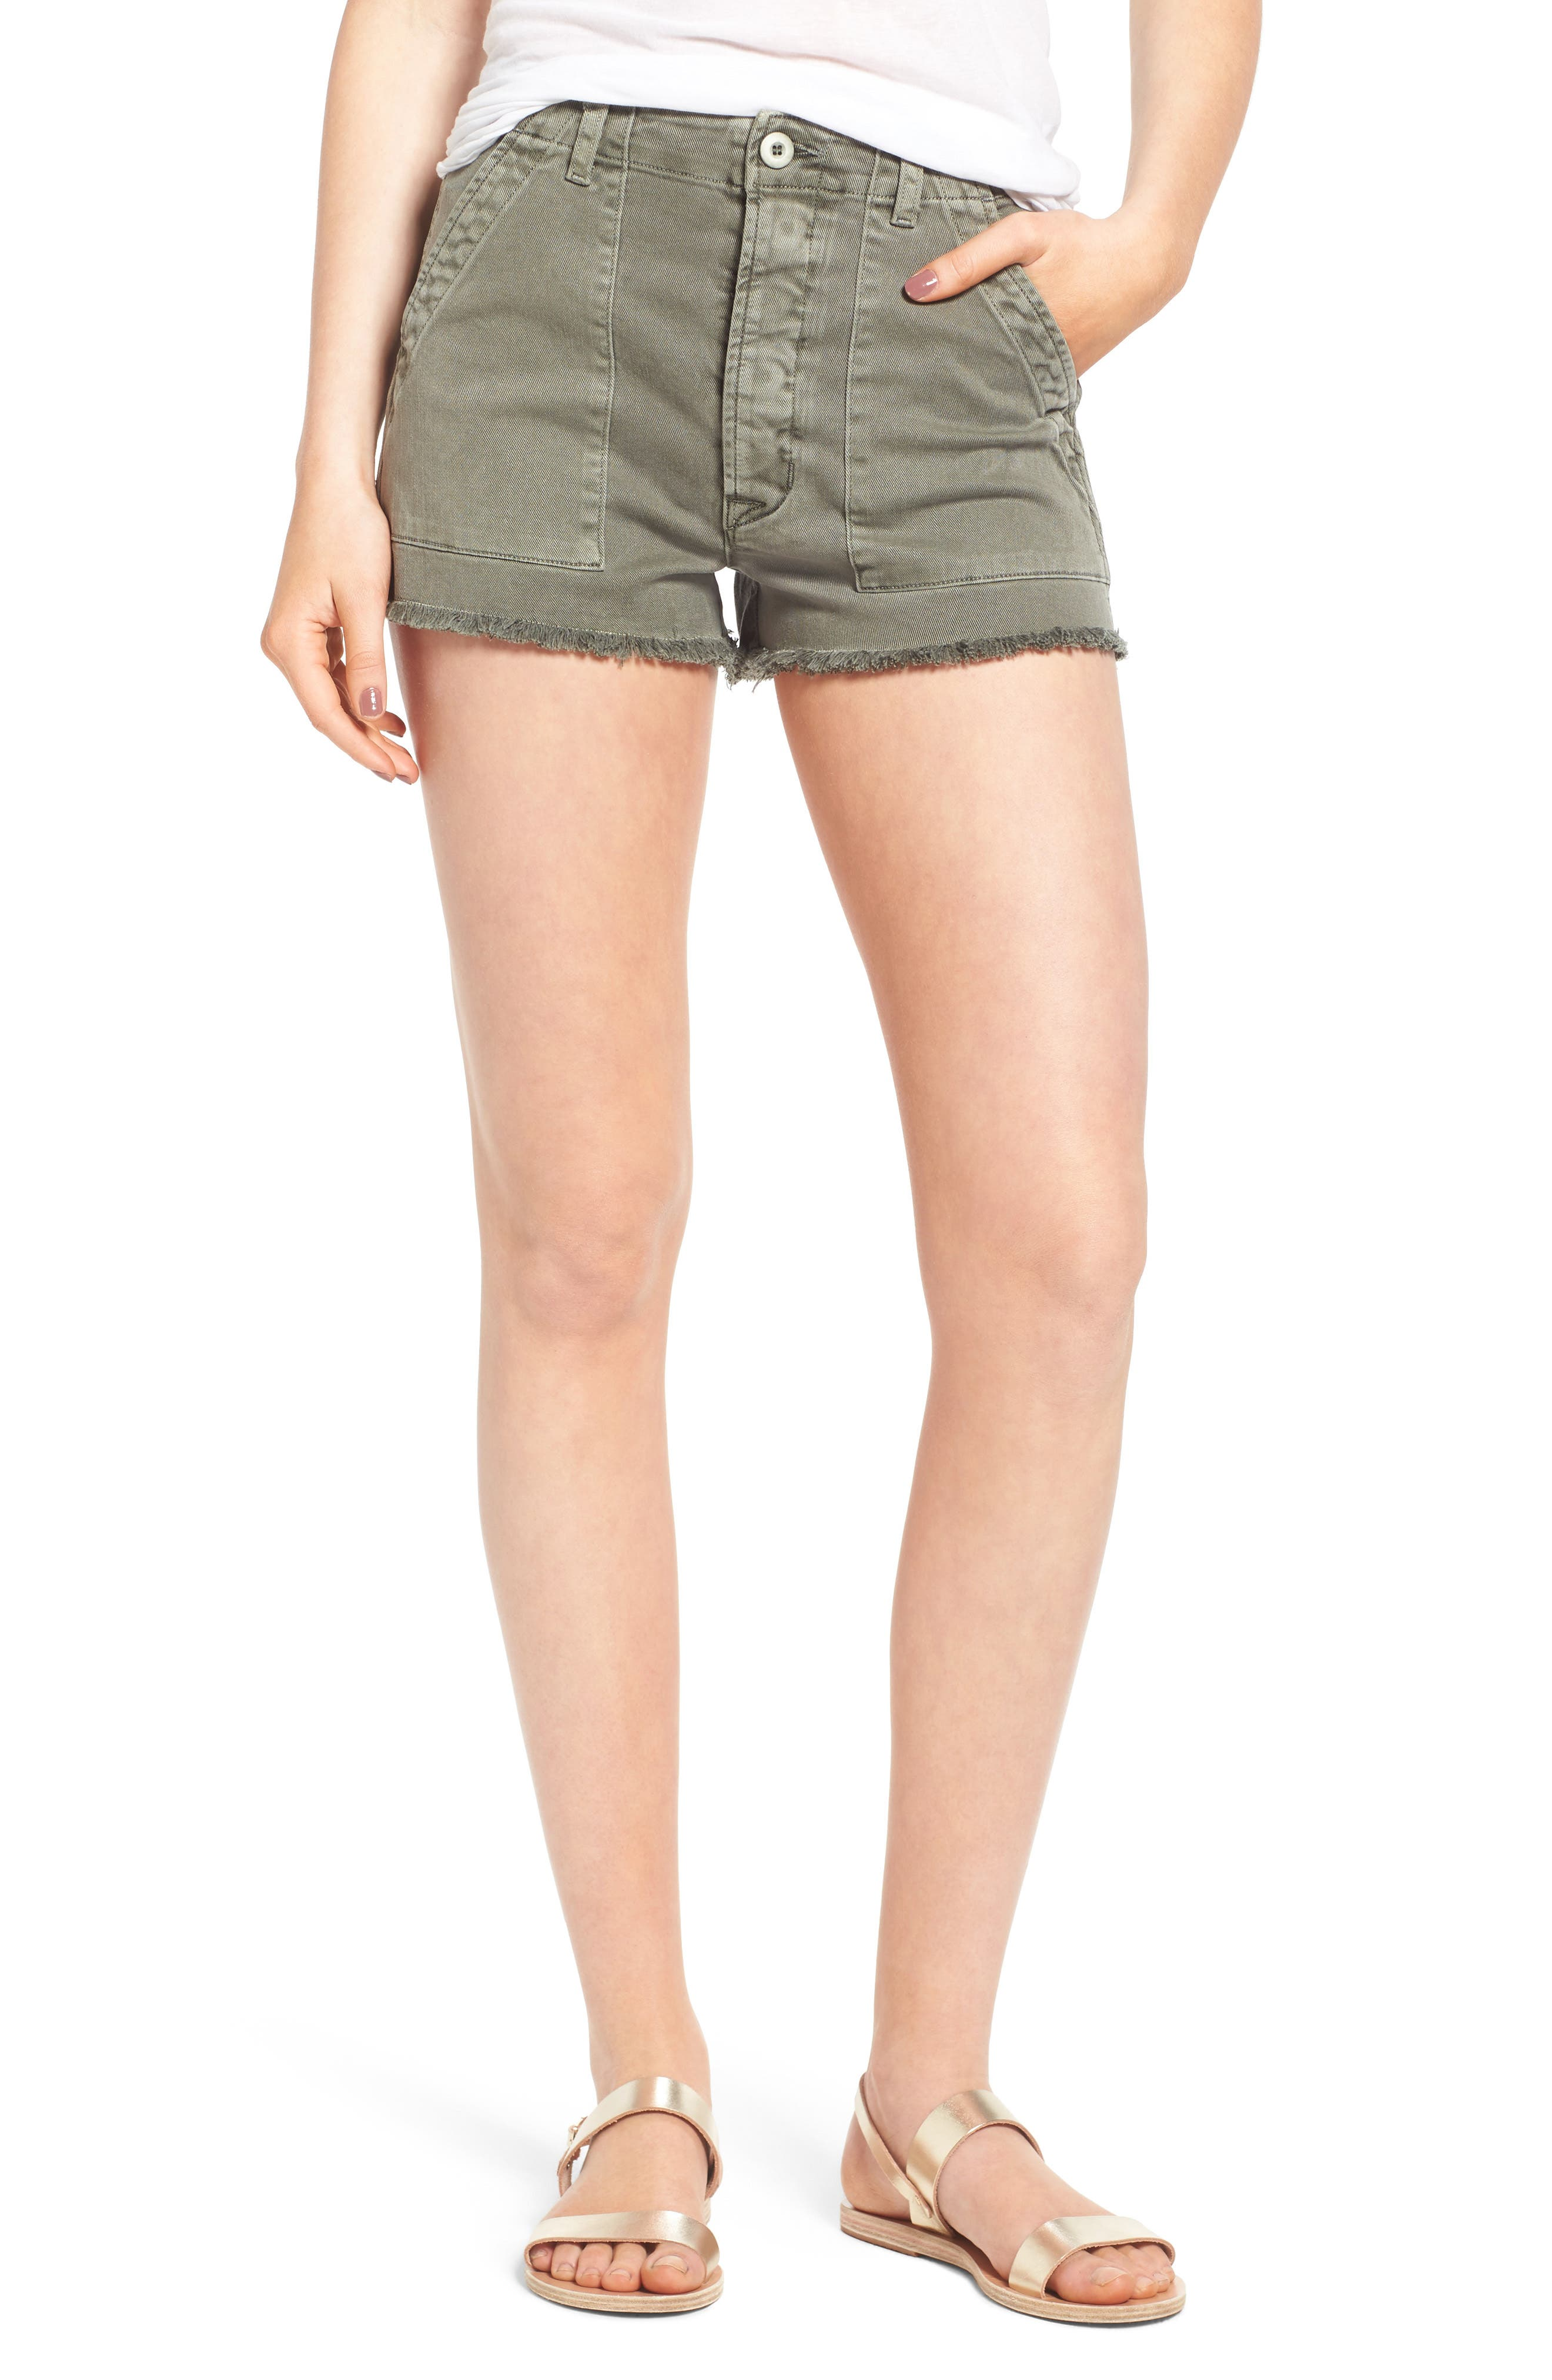 Alternate Image 1 Selected - Hudson Jeans MKA Military High Waist Shorts